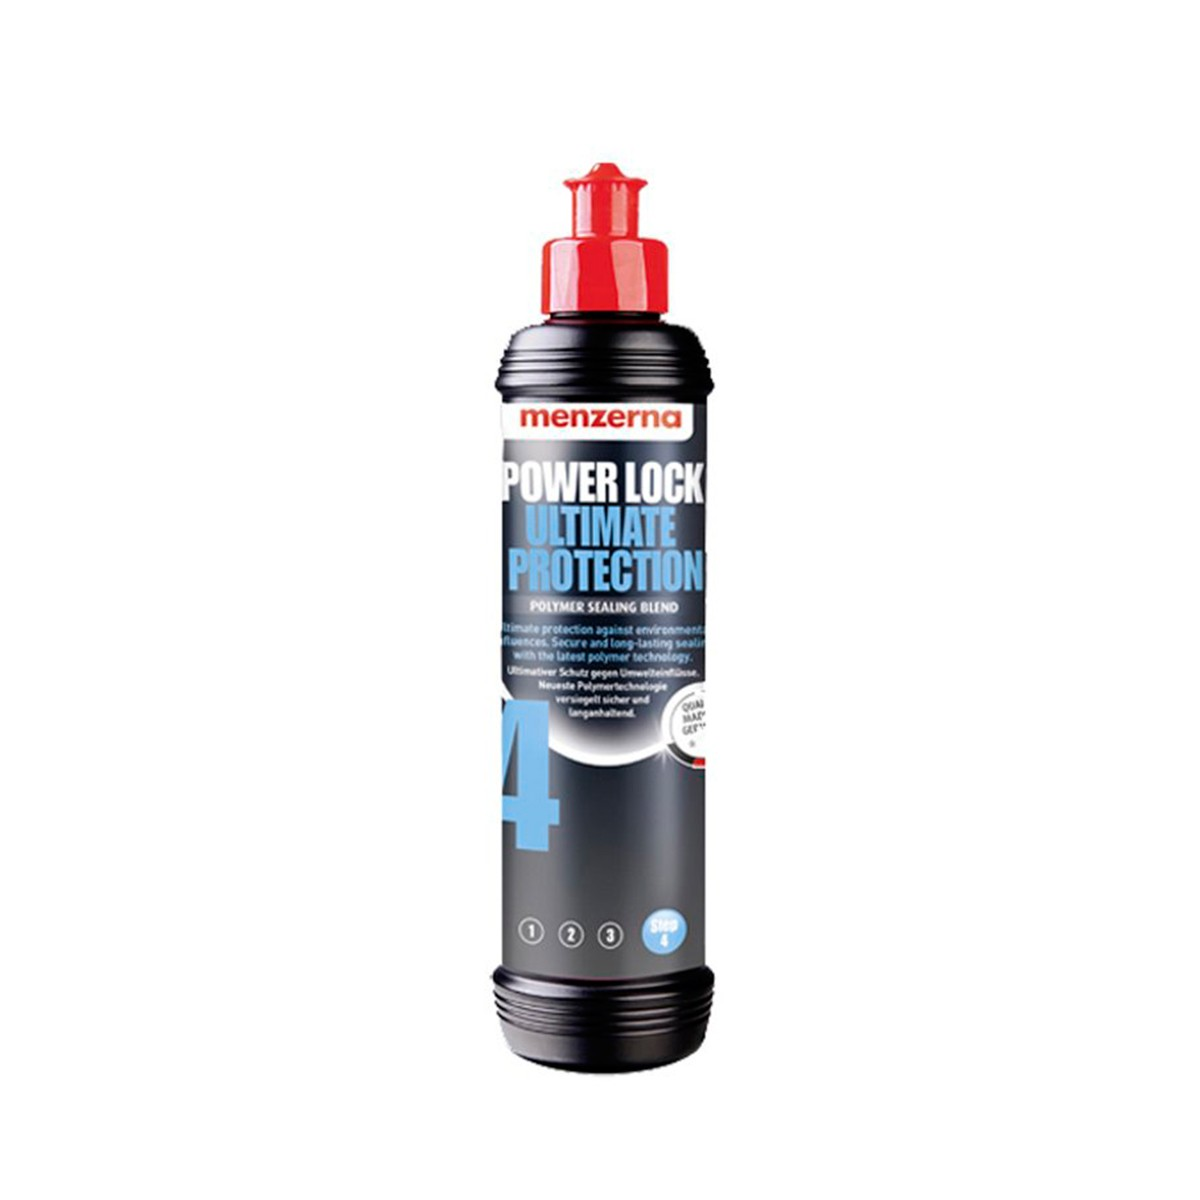 Power Lock Ultimate Protection 250 ml - Menzerna